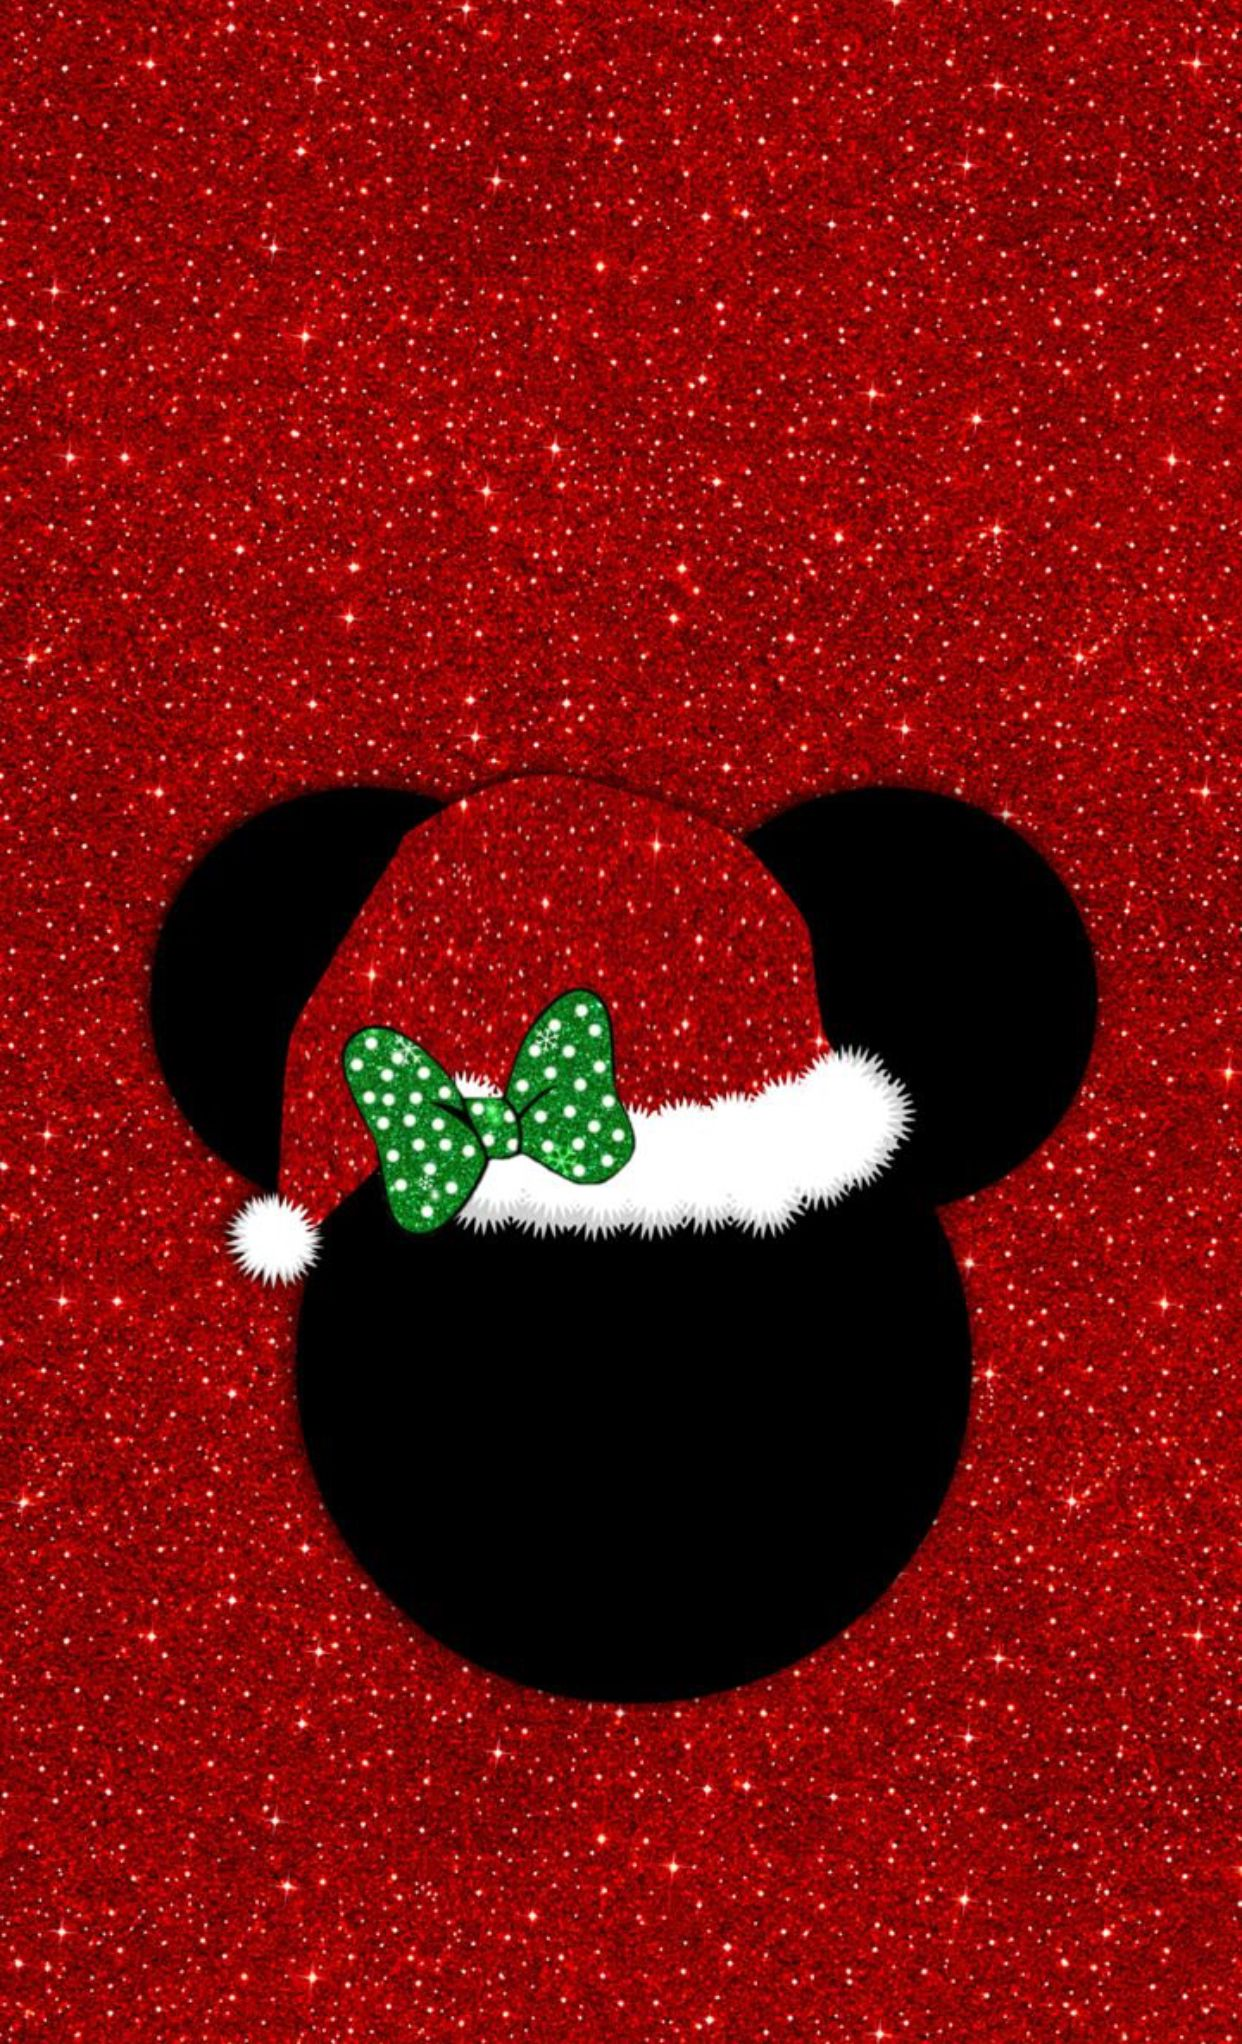 Pin By Mary Tarwater On Iphone Wallpaper Wallpaper Iphone Christmas Christmas Wallpaper Iphone Cute Xmas Wallpaper